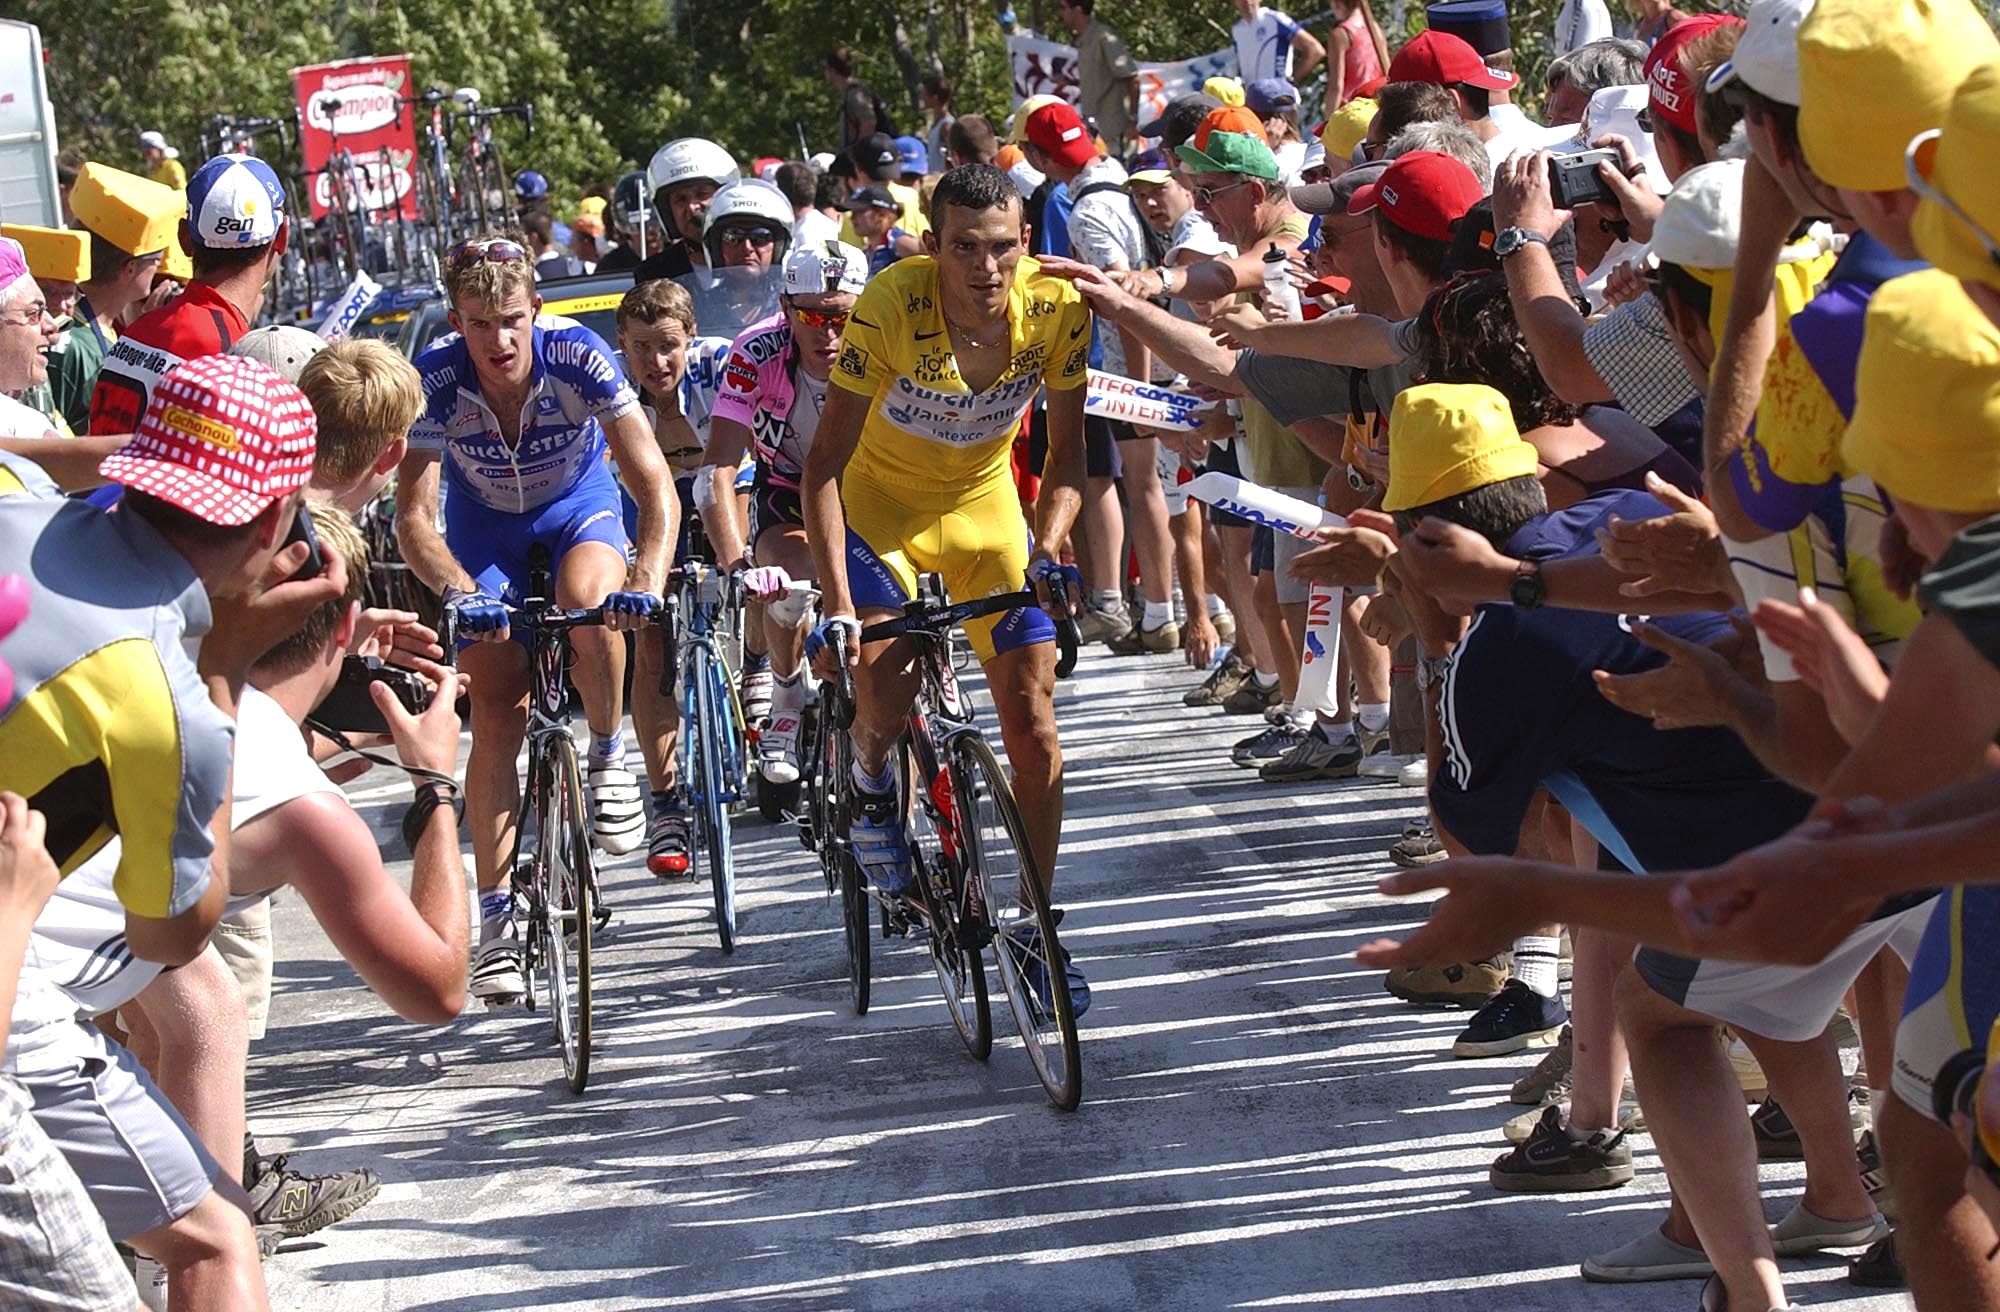 Richard Virenque climbs Alpe d'Huez while wearing the yellow jersey at the 2003 Tour de France